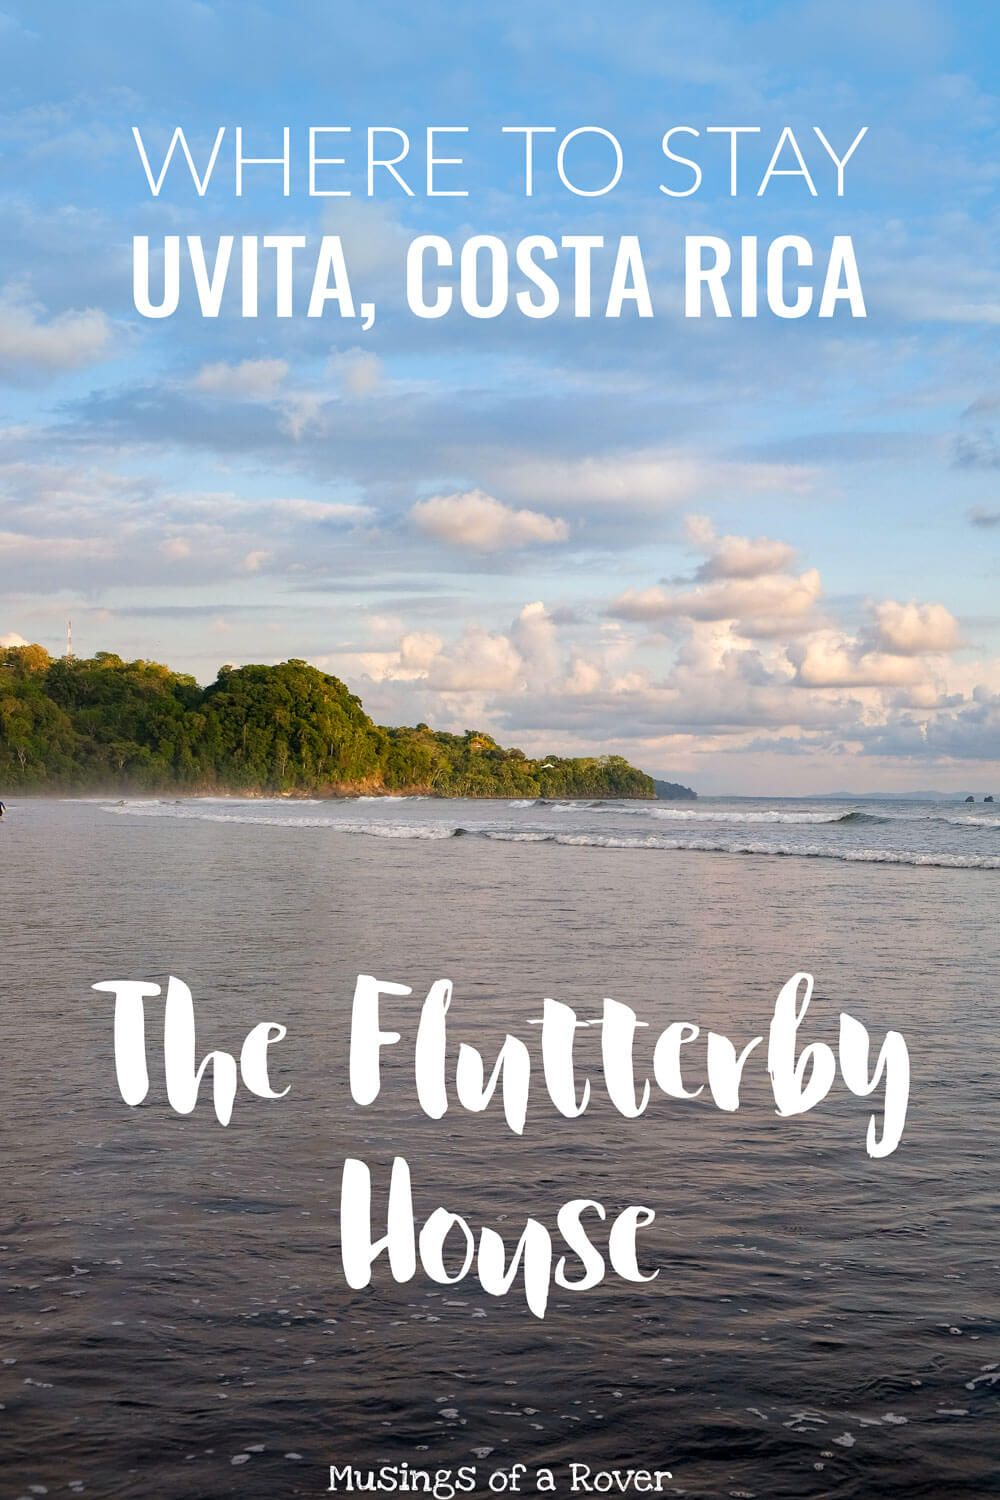 Uvita, Costa Rica has a handful of accomodation options but there is one Uvita hostel you need to try: The Flutterby House. Private treehouses, dorms, cabins, great food, lively bar, amazing staff, 2 blocks from the beach, surf lessons, and more. Need I go on?